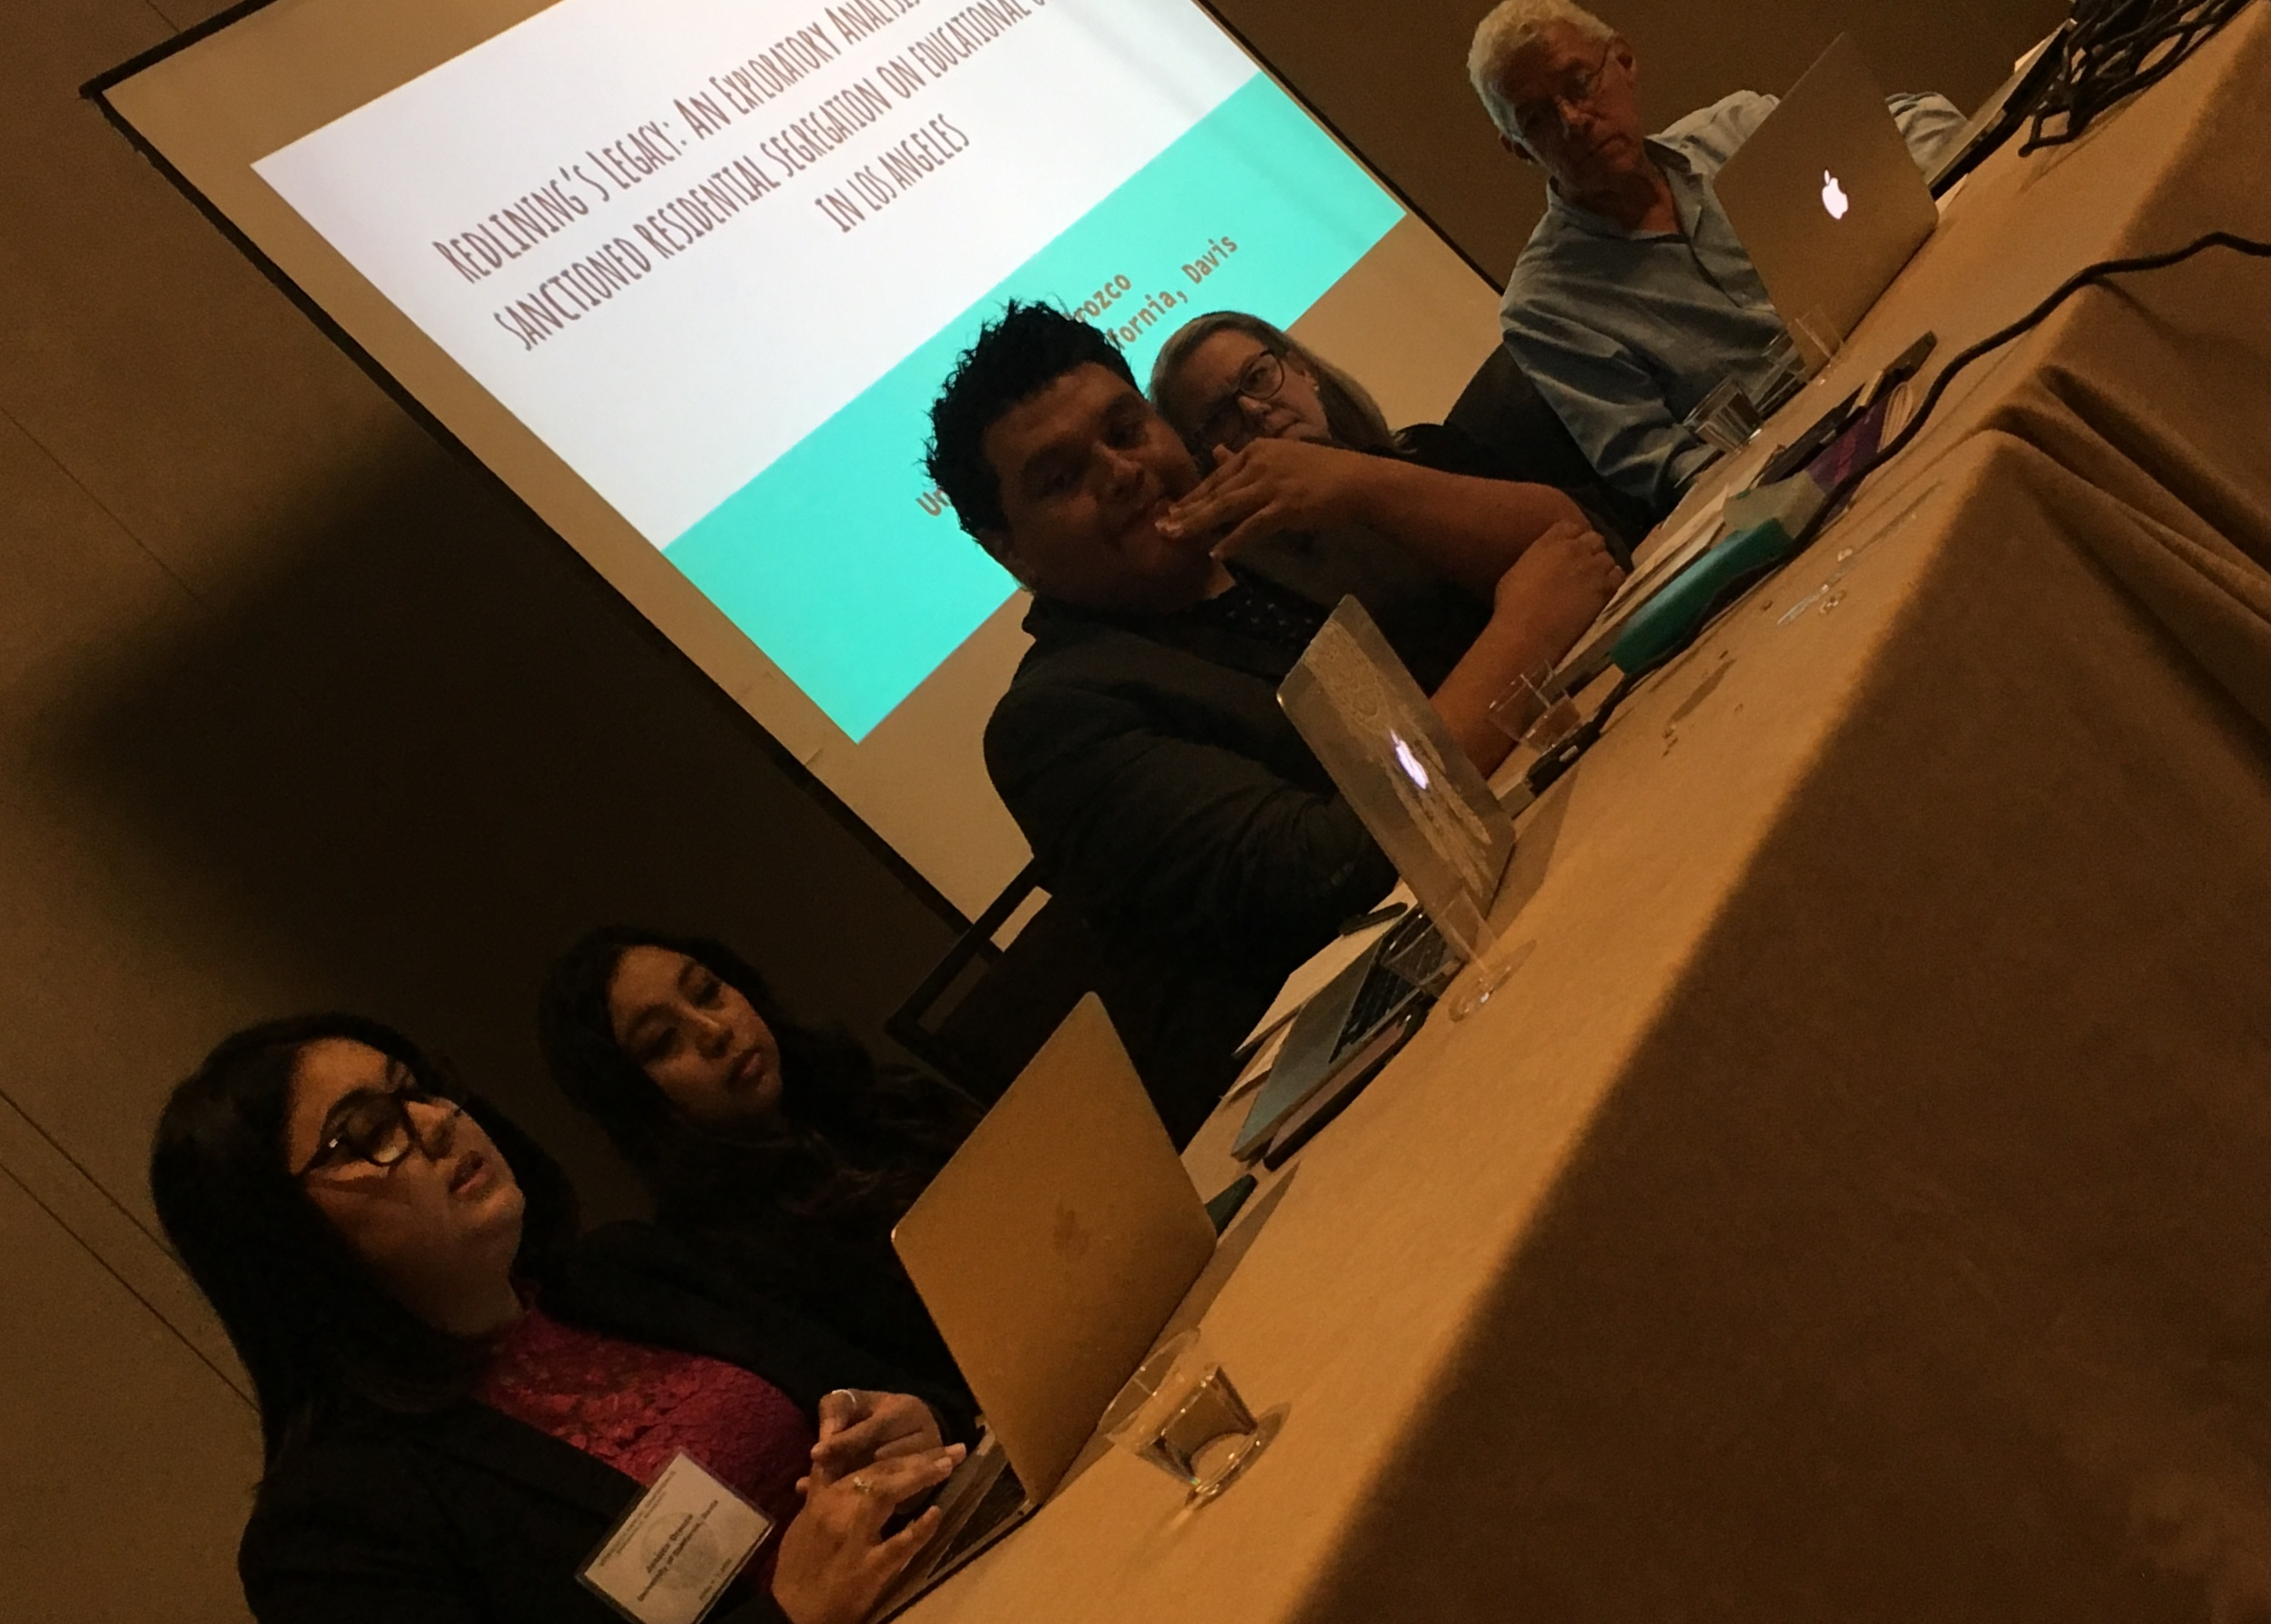 Jessica Orozco presenting at NACCS (National Association for Chicana and Chicano Studies) Conference in Bloomington, MN.